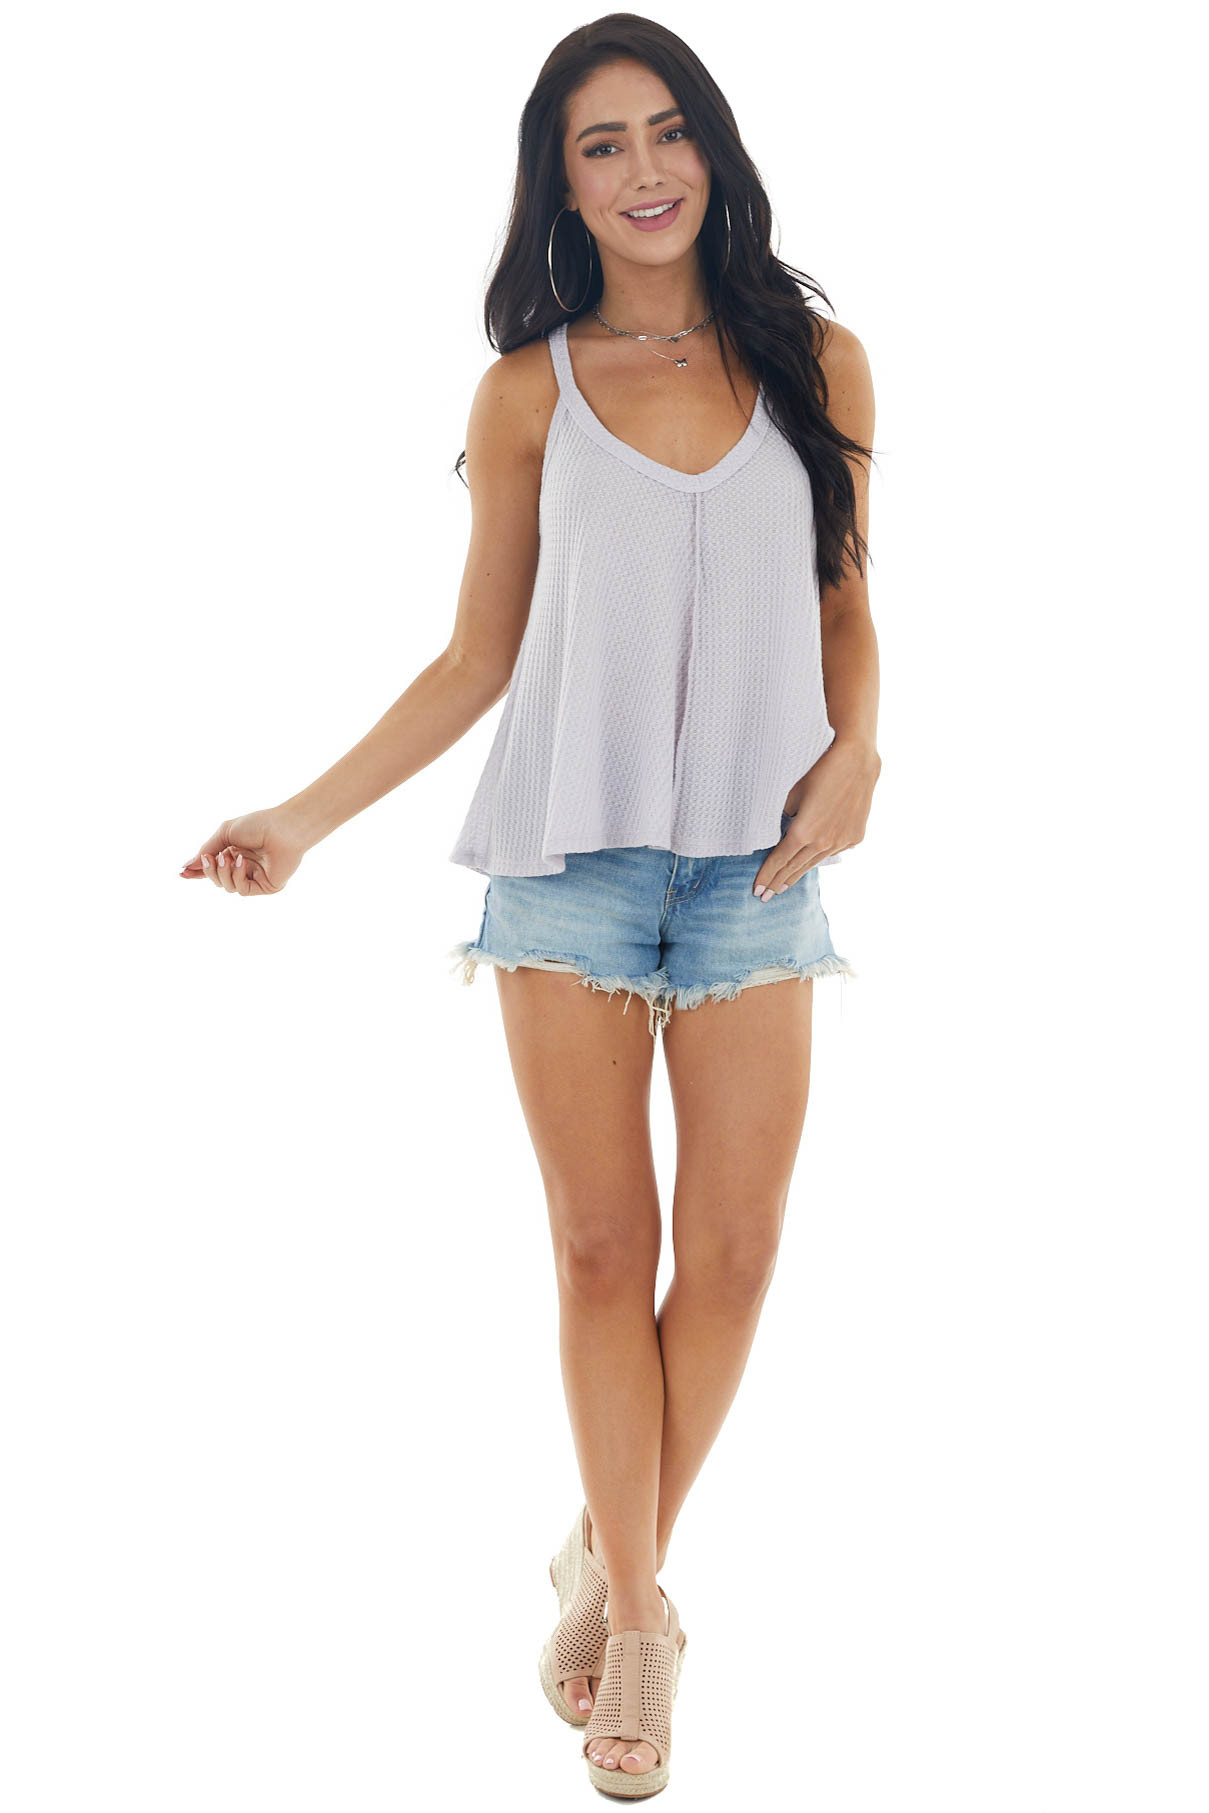 Pastel Lavender Waffle Knit Tank Top with Out Seam Details